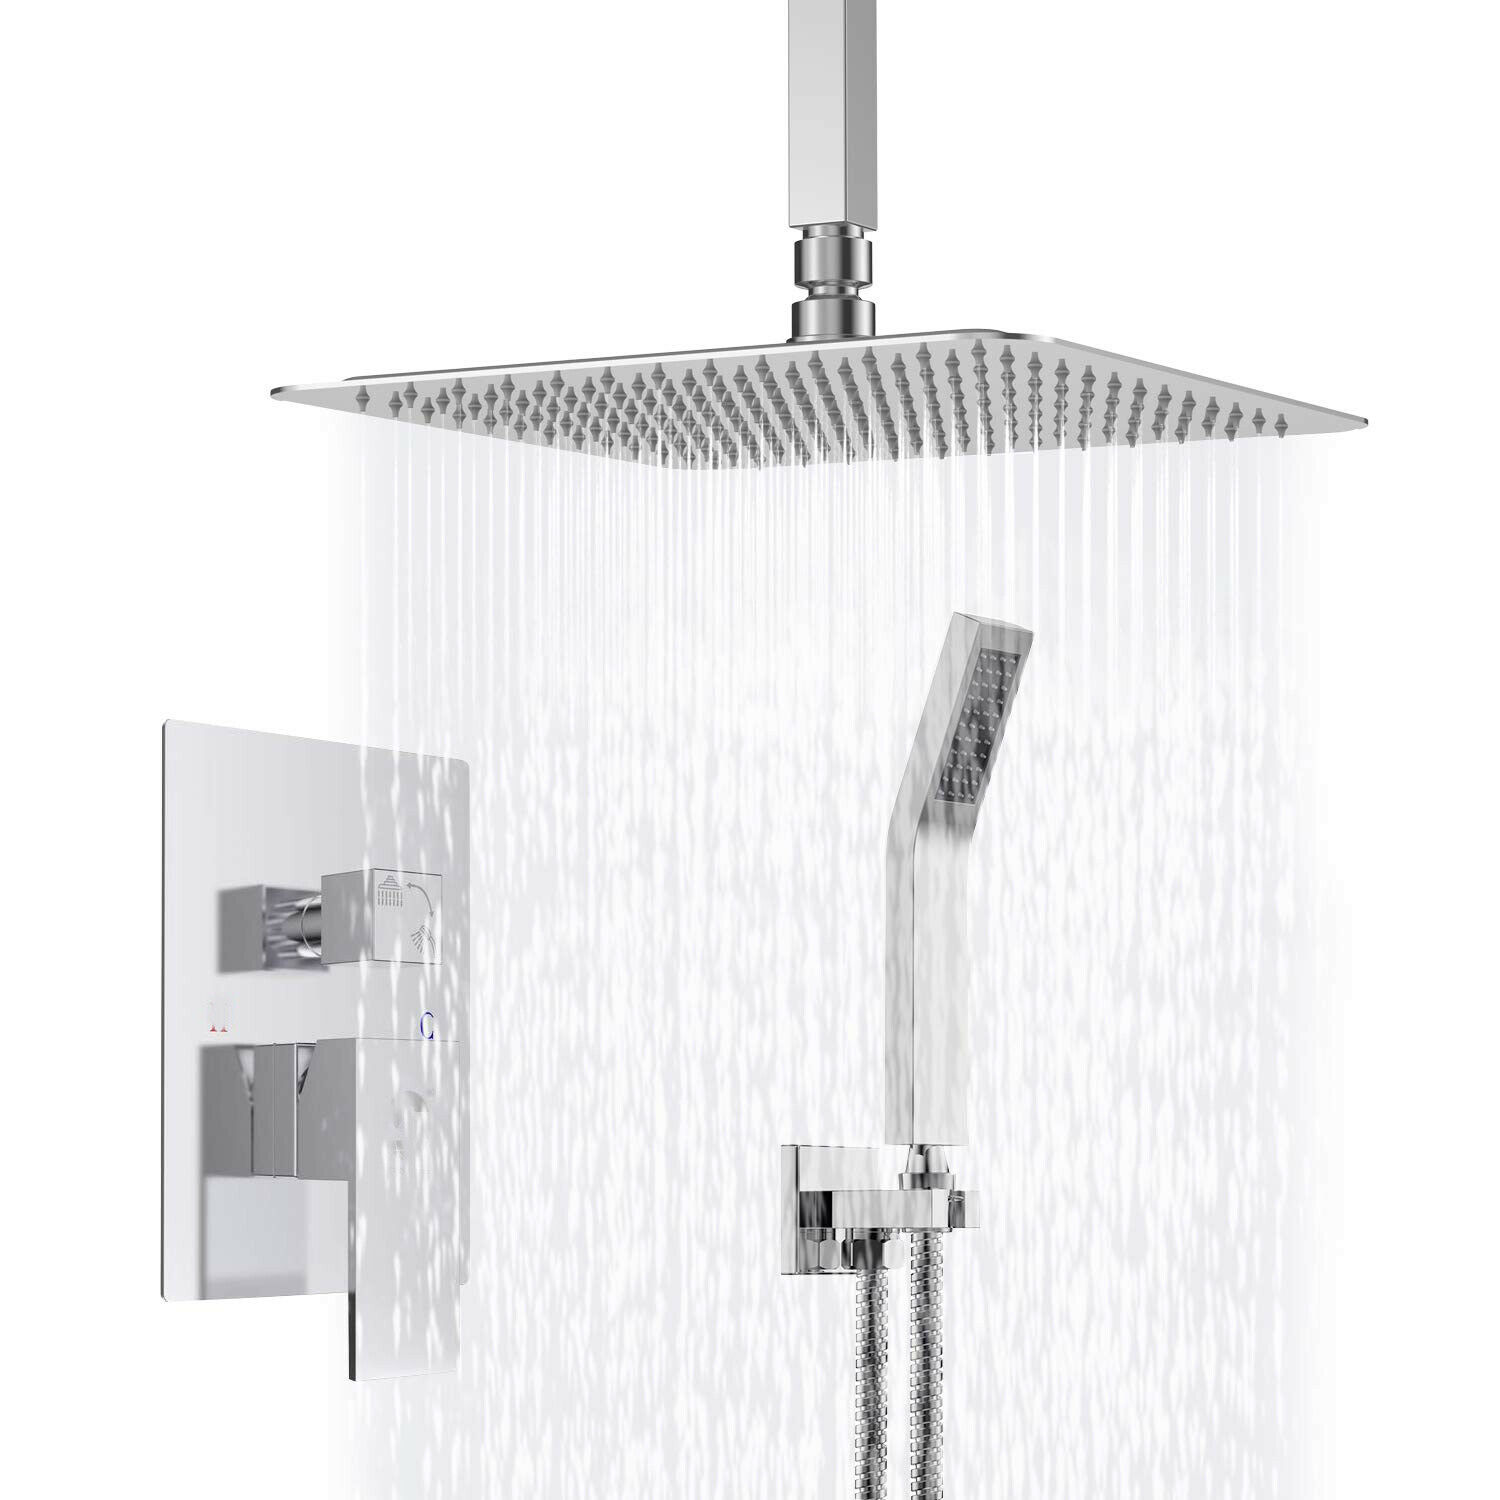 Details About Ceiling Mount Bathroom Rain Mixer Shower Combo Set 8 Inch Rainfall Hand Shower